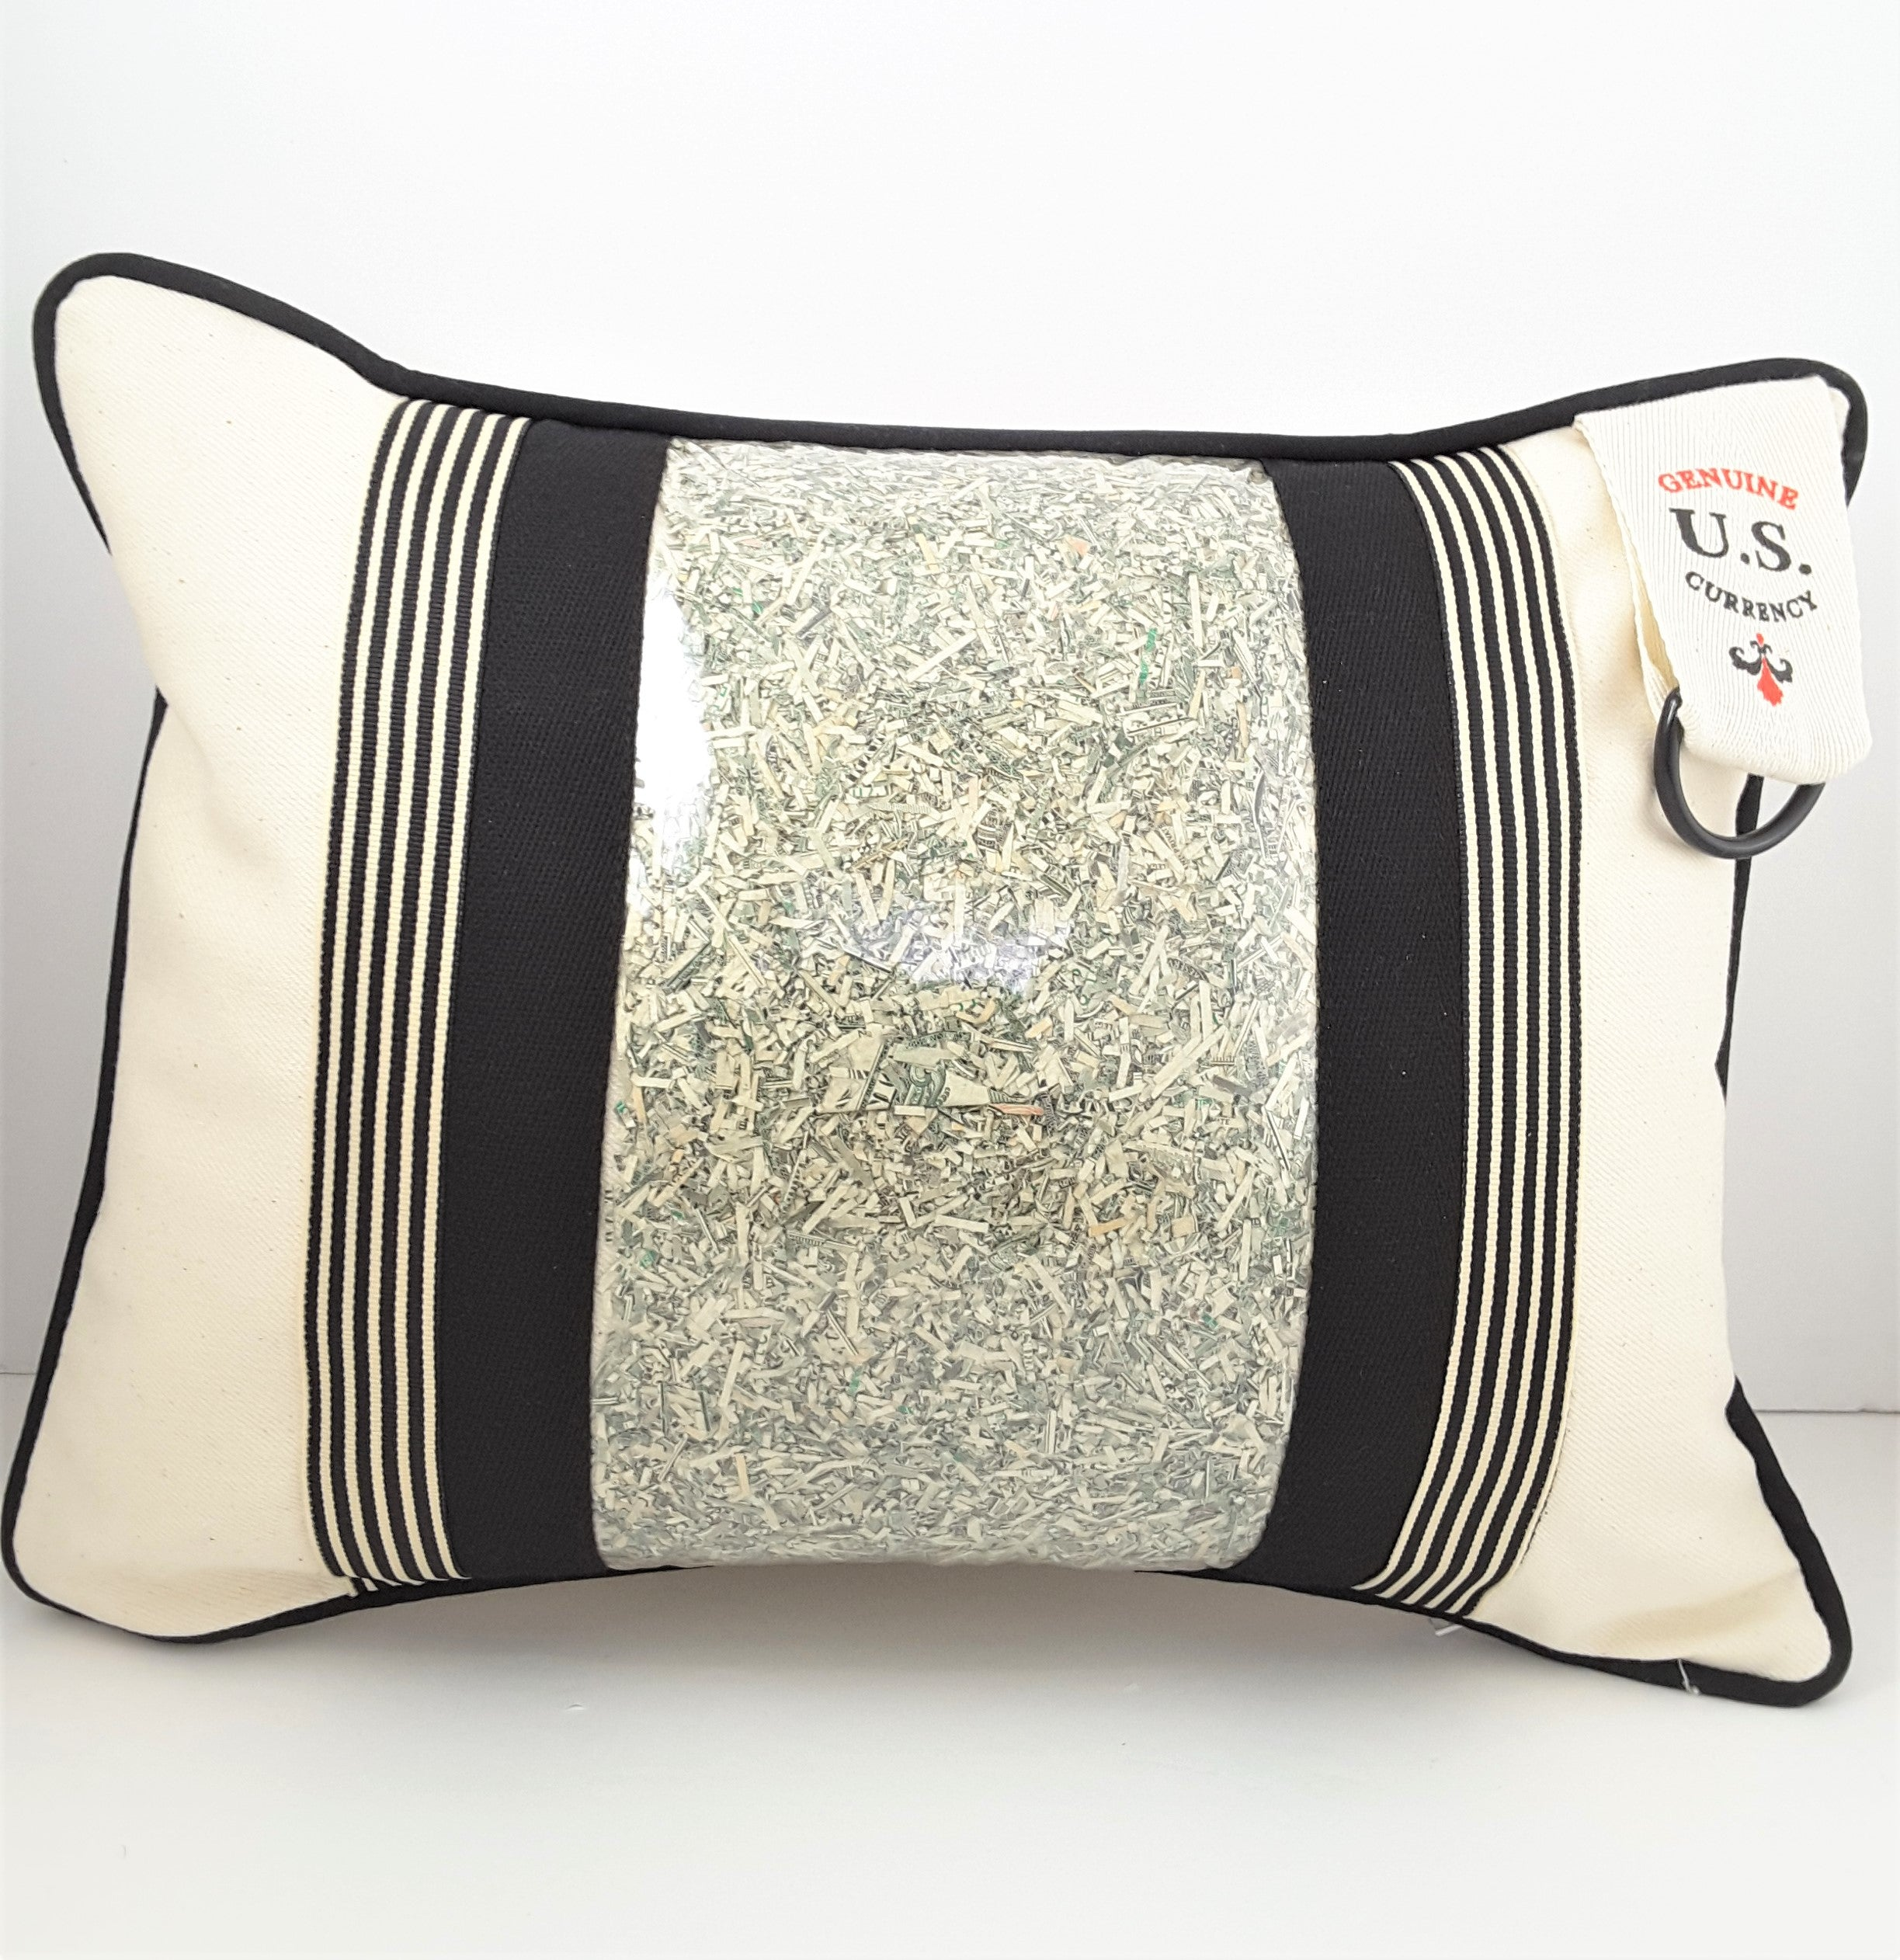 natural denim with black Prosperity Pillow with genuine U.S. currency